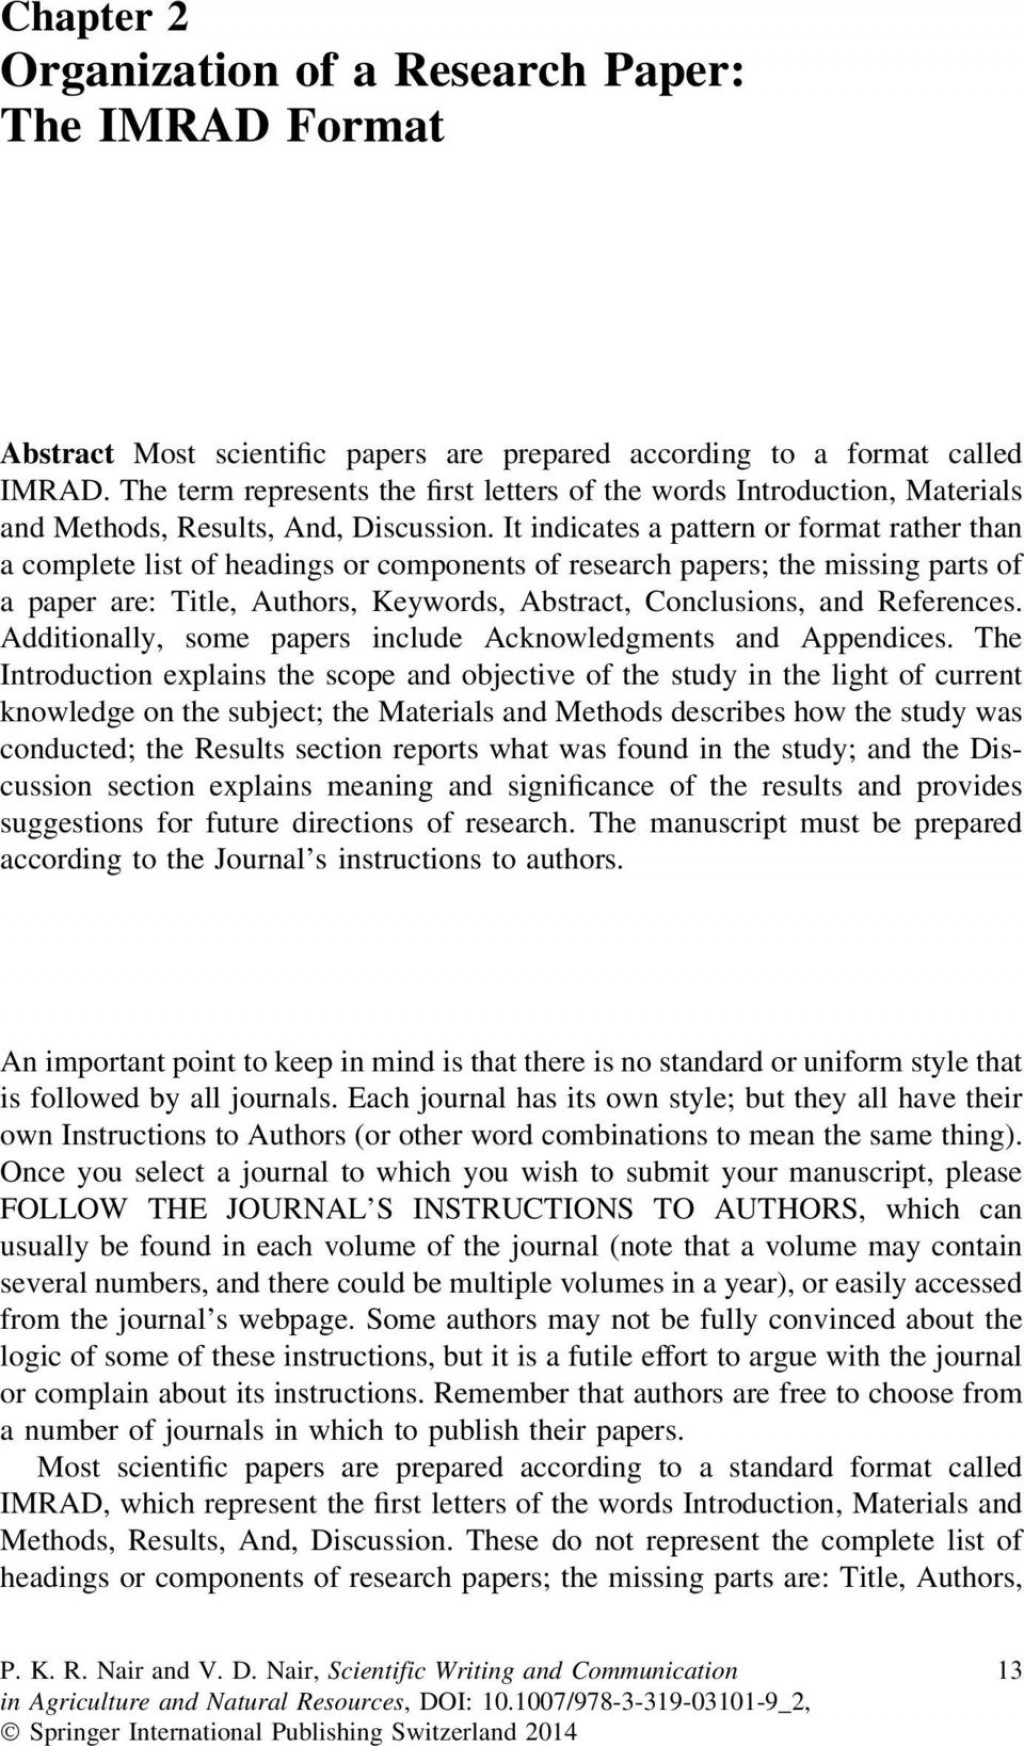 Cheapest custom research papers